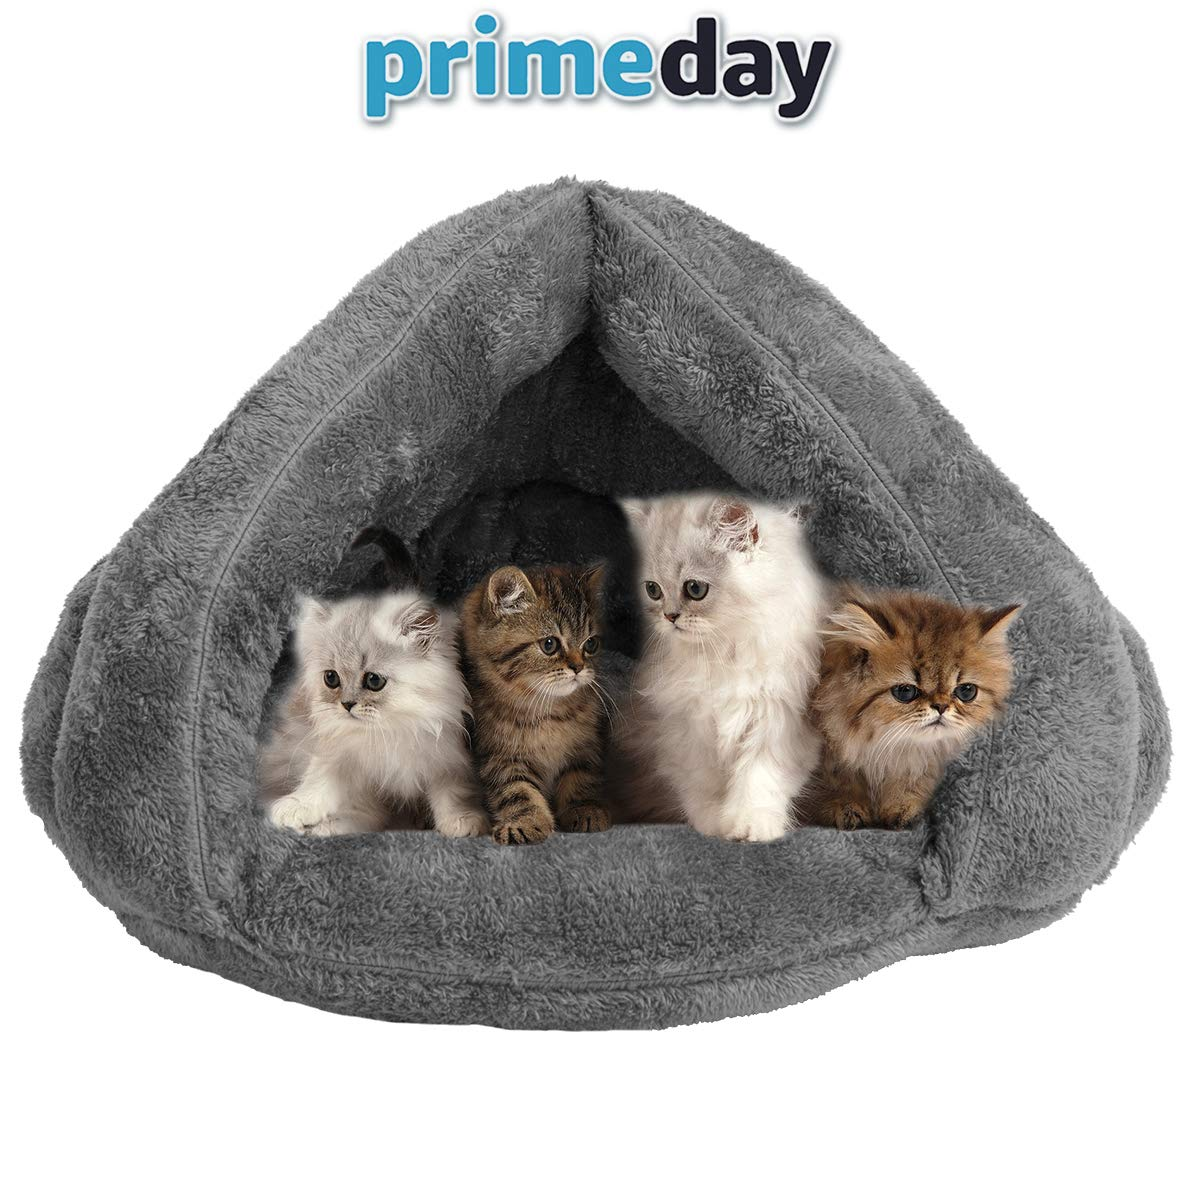 VeMee Plush Cat Sleep Bag Cozy Pet Cave Bed Covered Pet Beds Cave for Cat Small Dogs and Puppies Winter Pets Indoor Triangle Nest